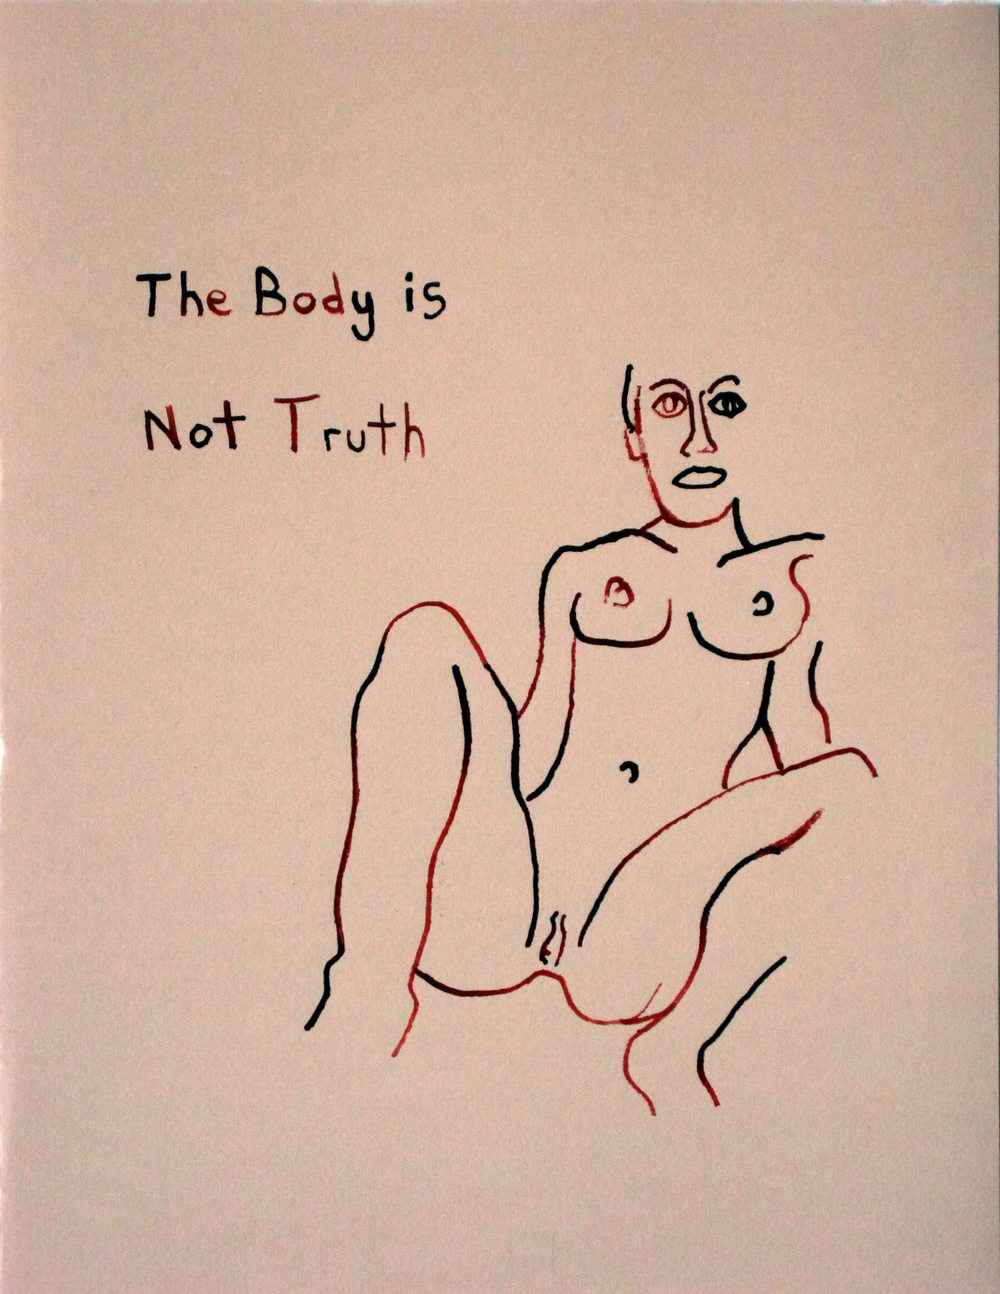 The Body is Not Truth